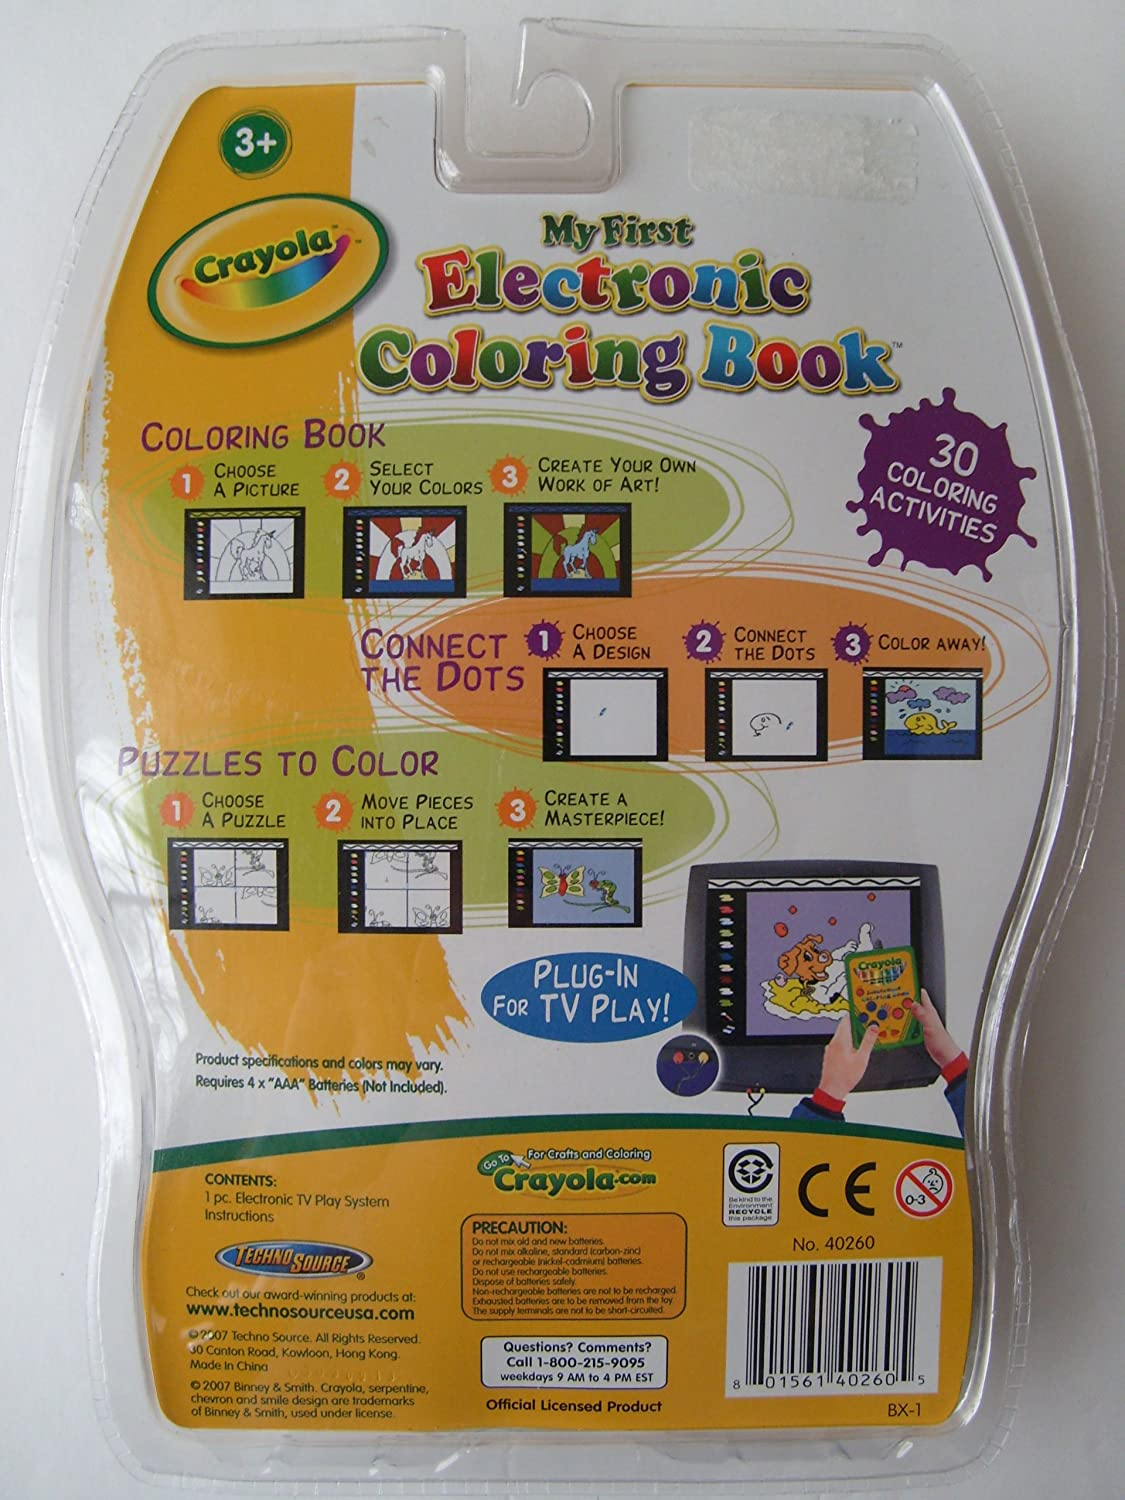 Amazon.com: My First Electronic Coloring Book: Video Games